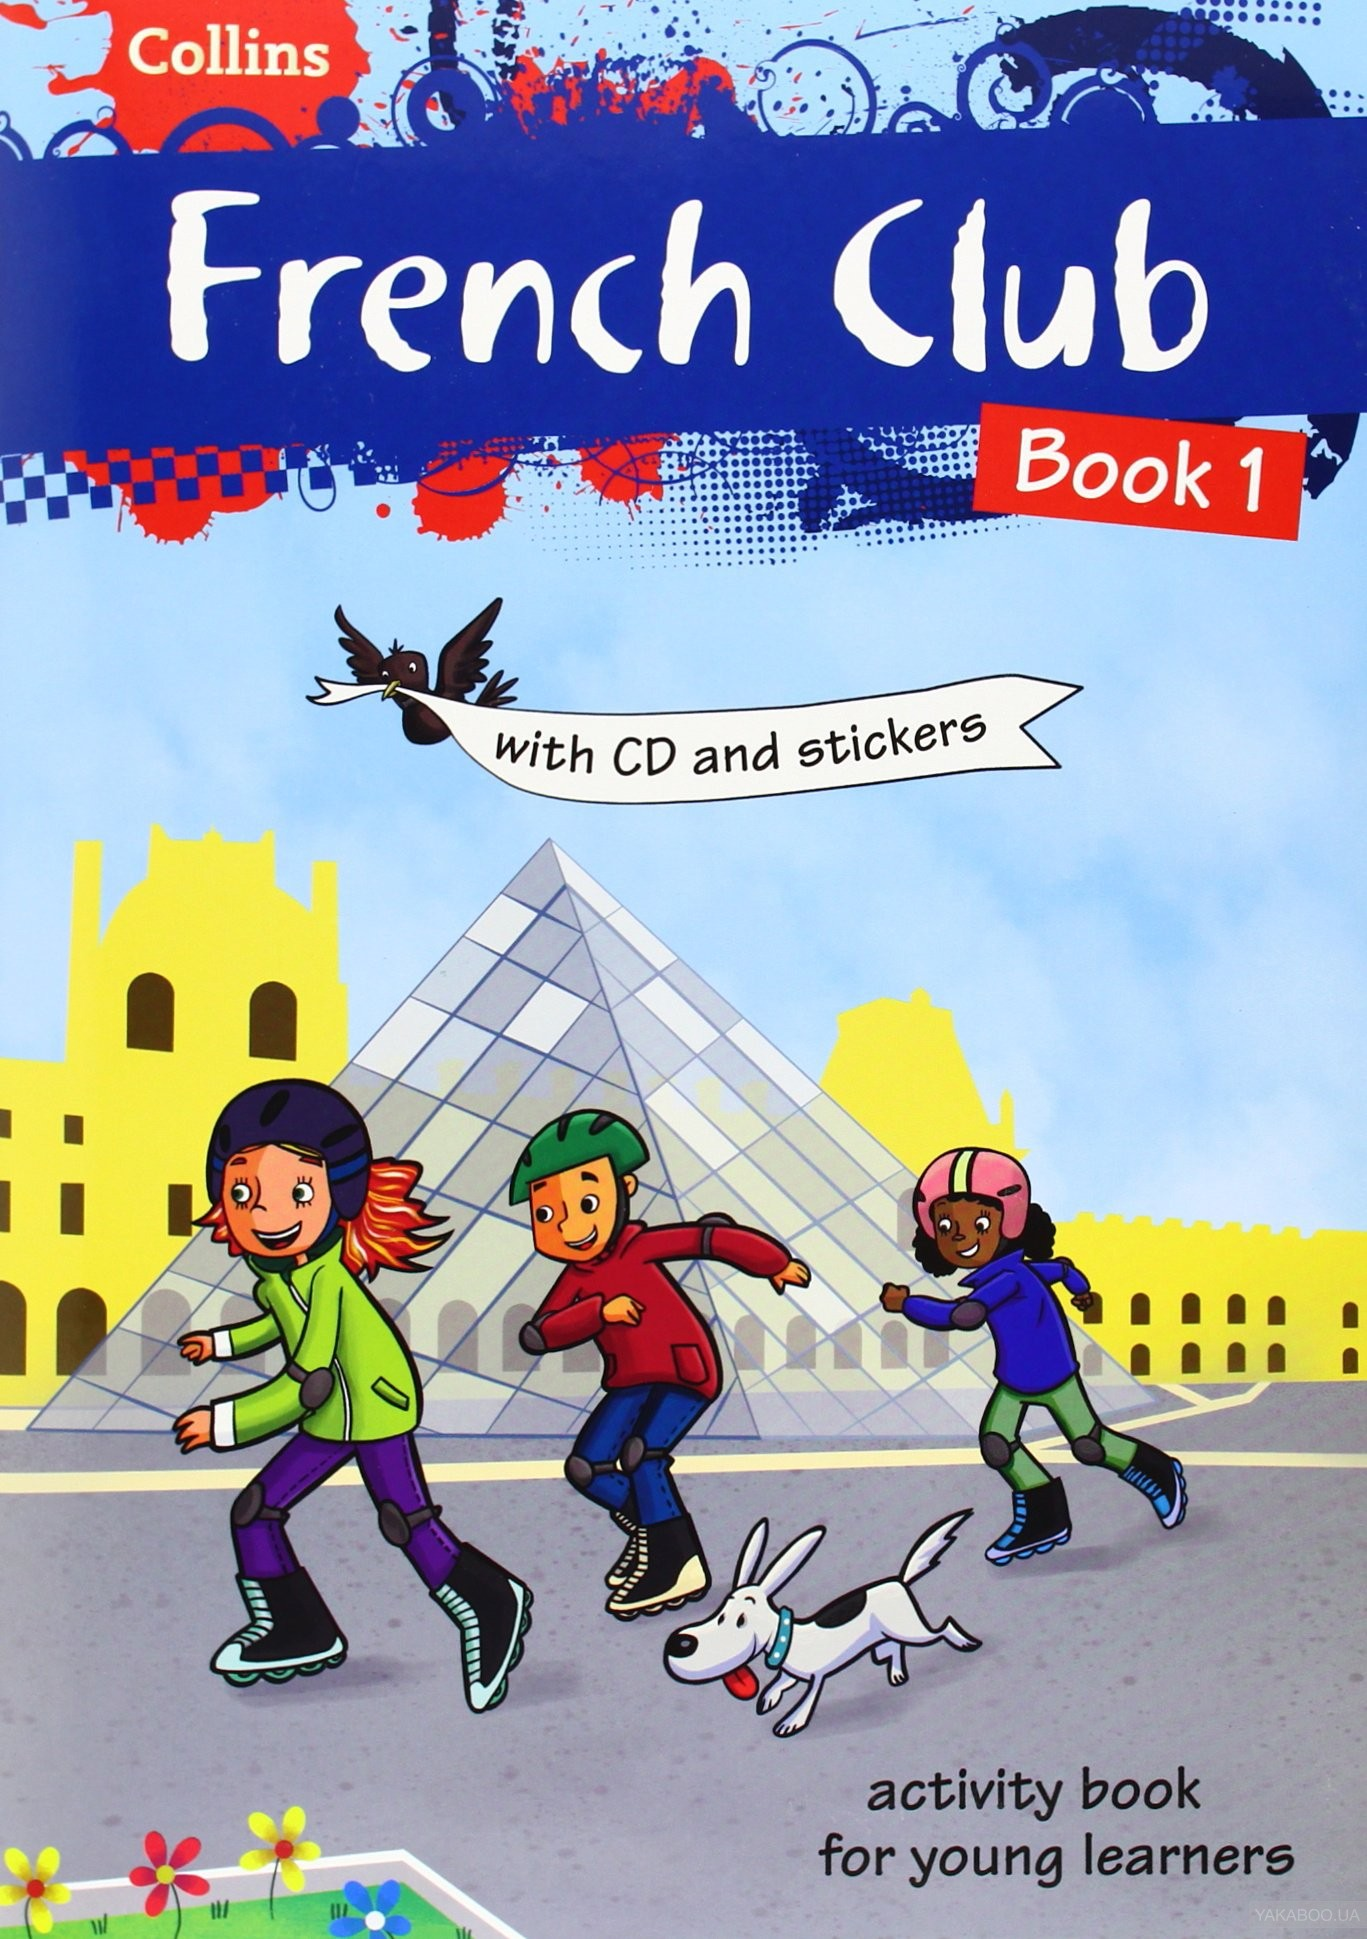 Collins French Club. Book 1